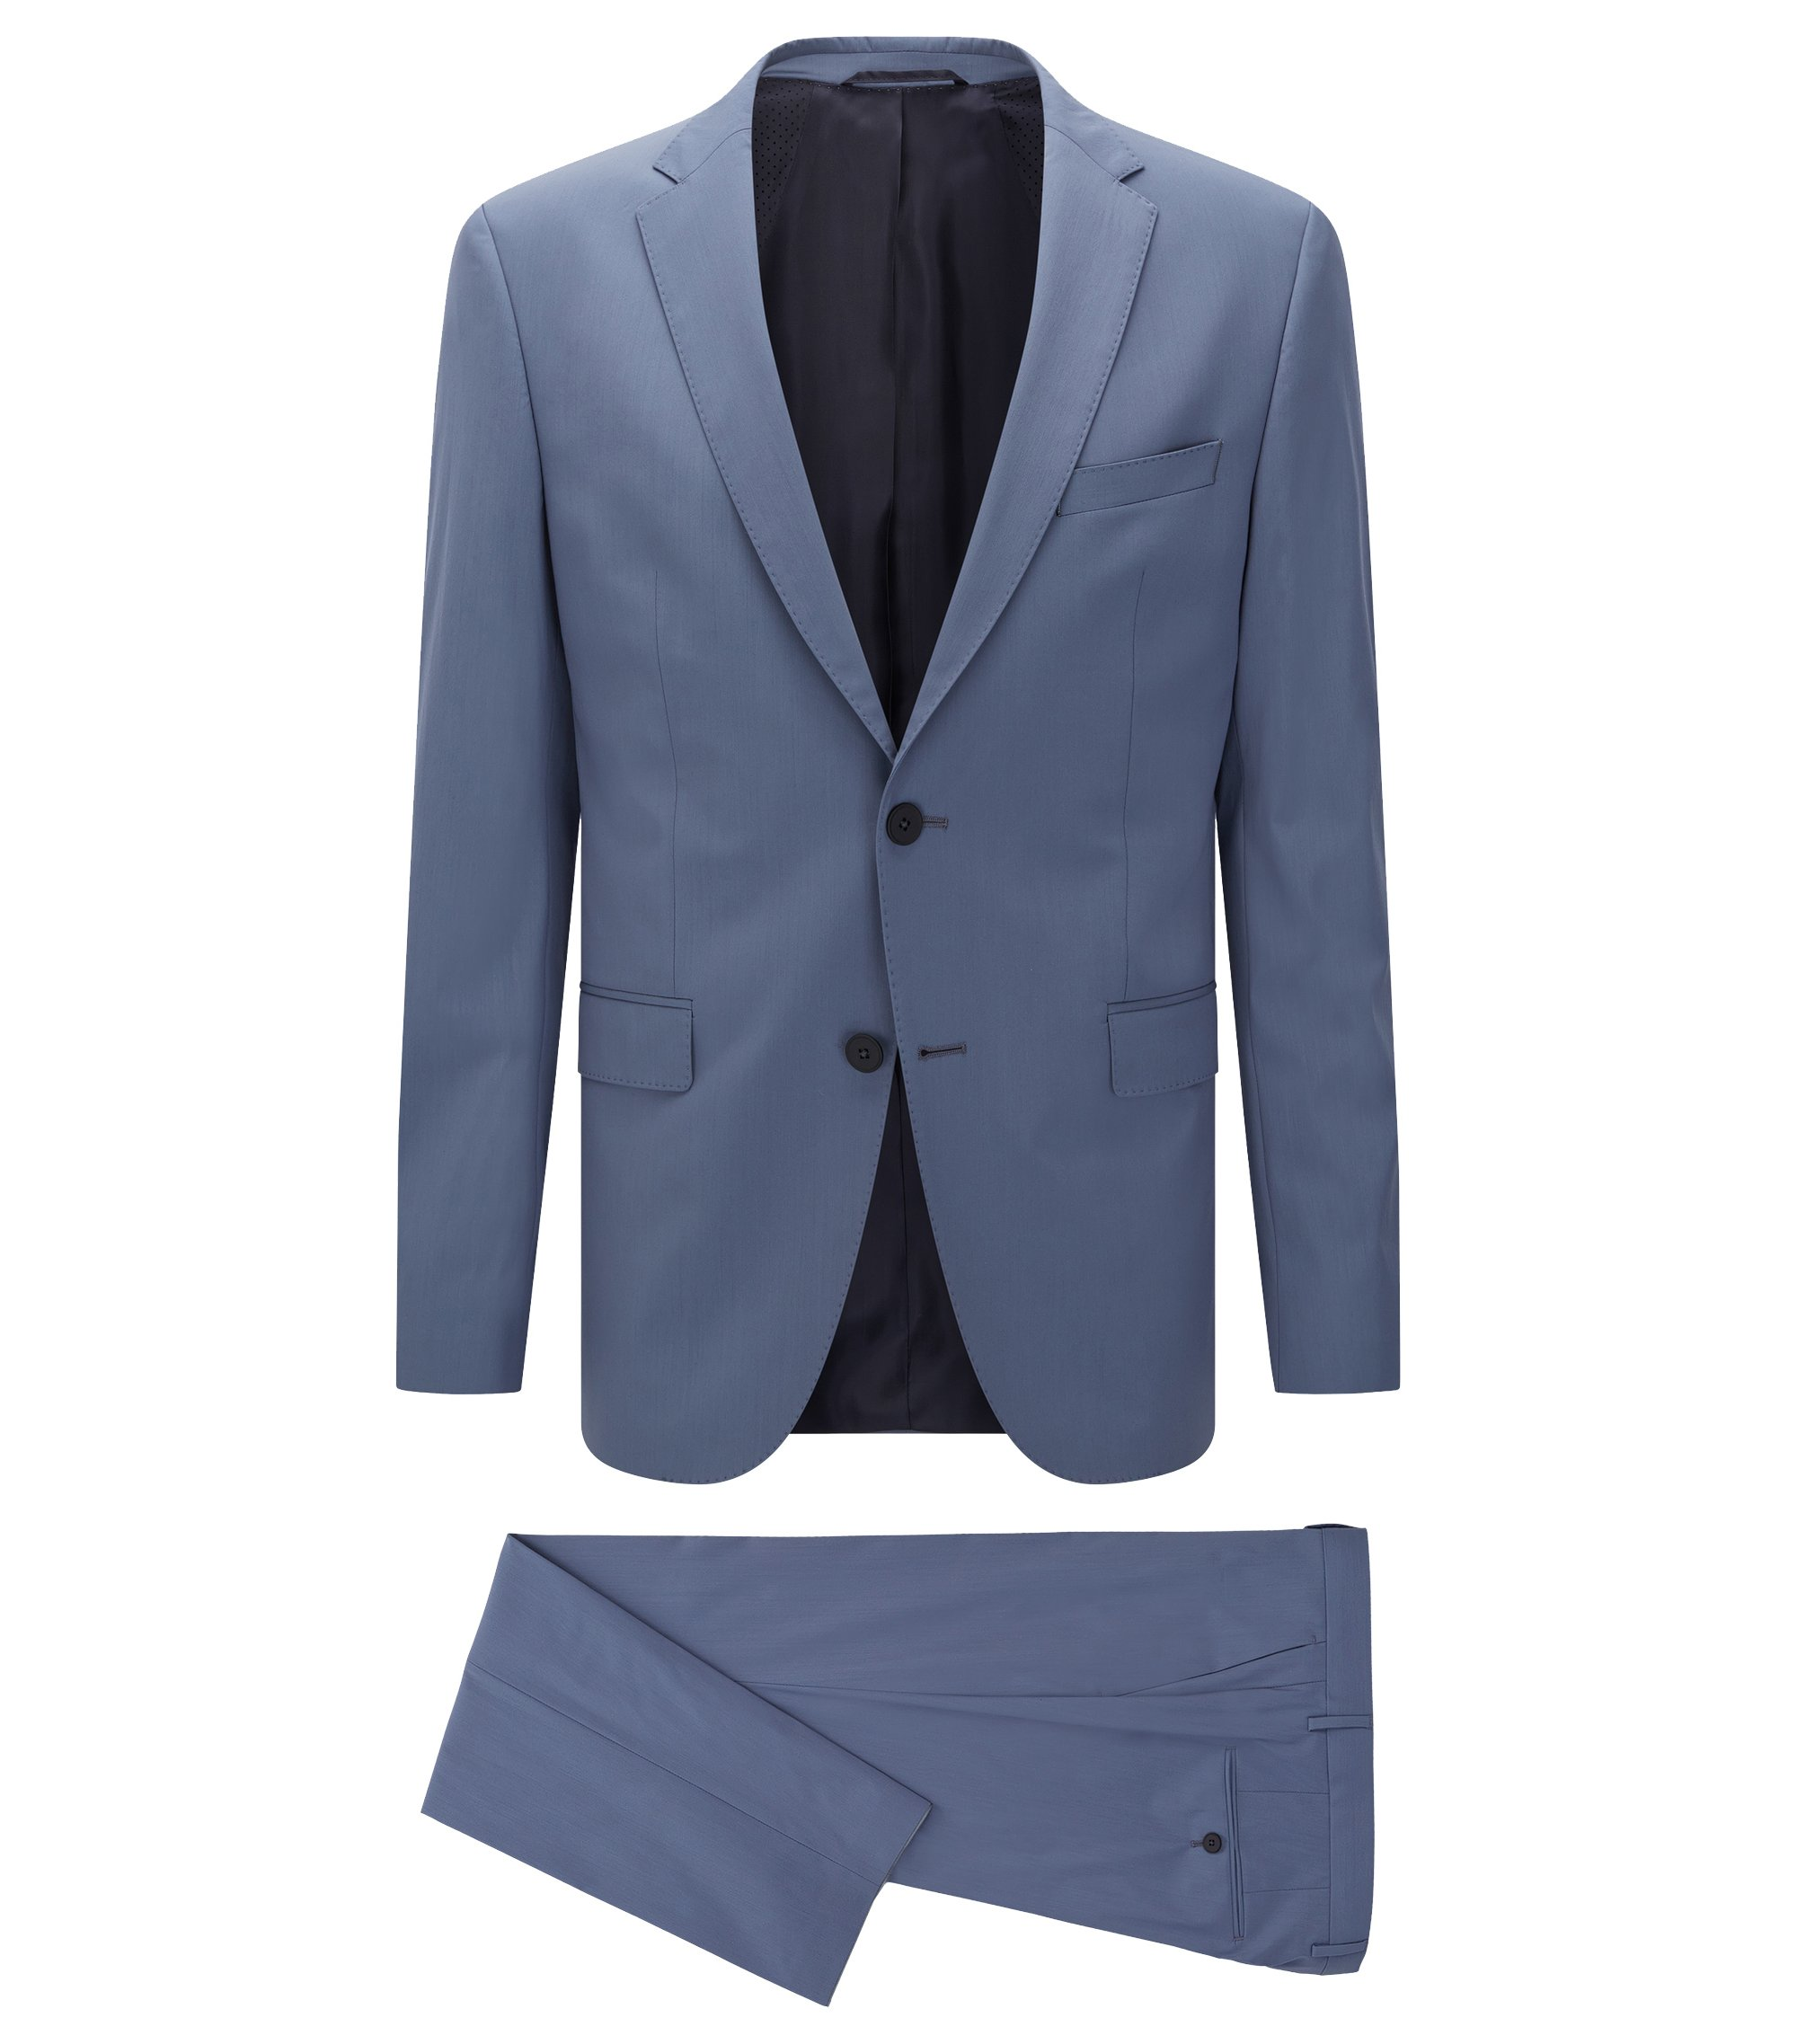 Stretch Virgin Wool Blend Travel Suit, Slim Fit | Nestro/Byte, Open Blue